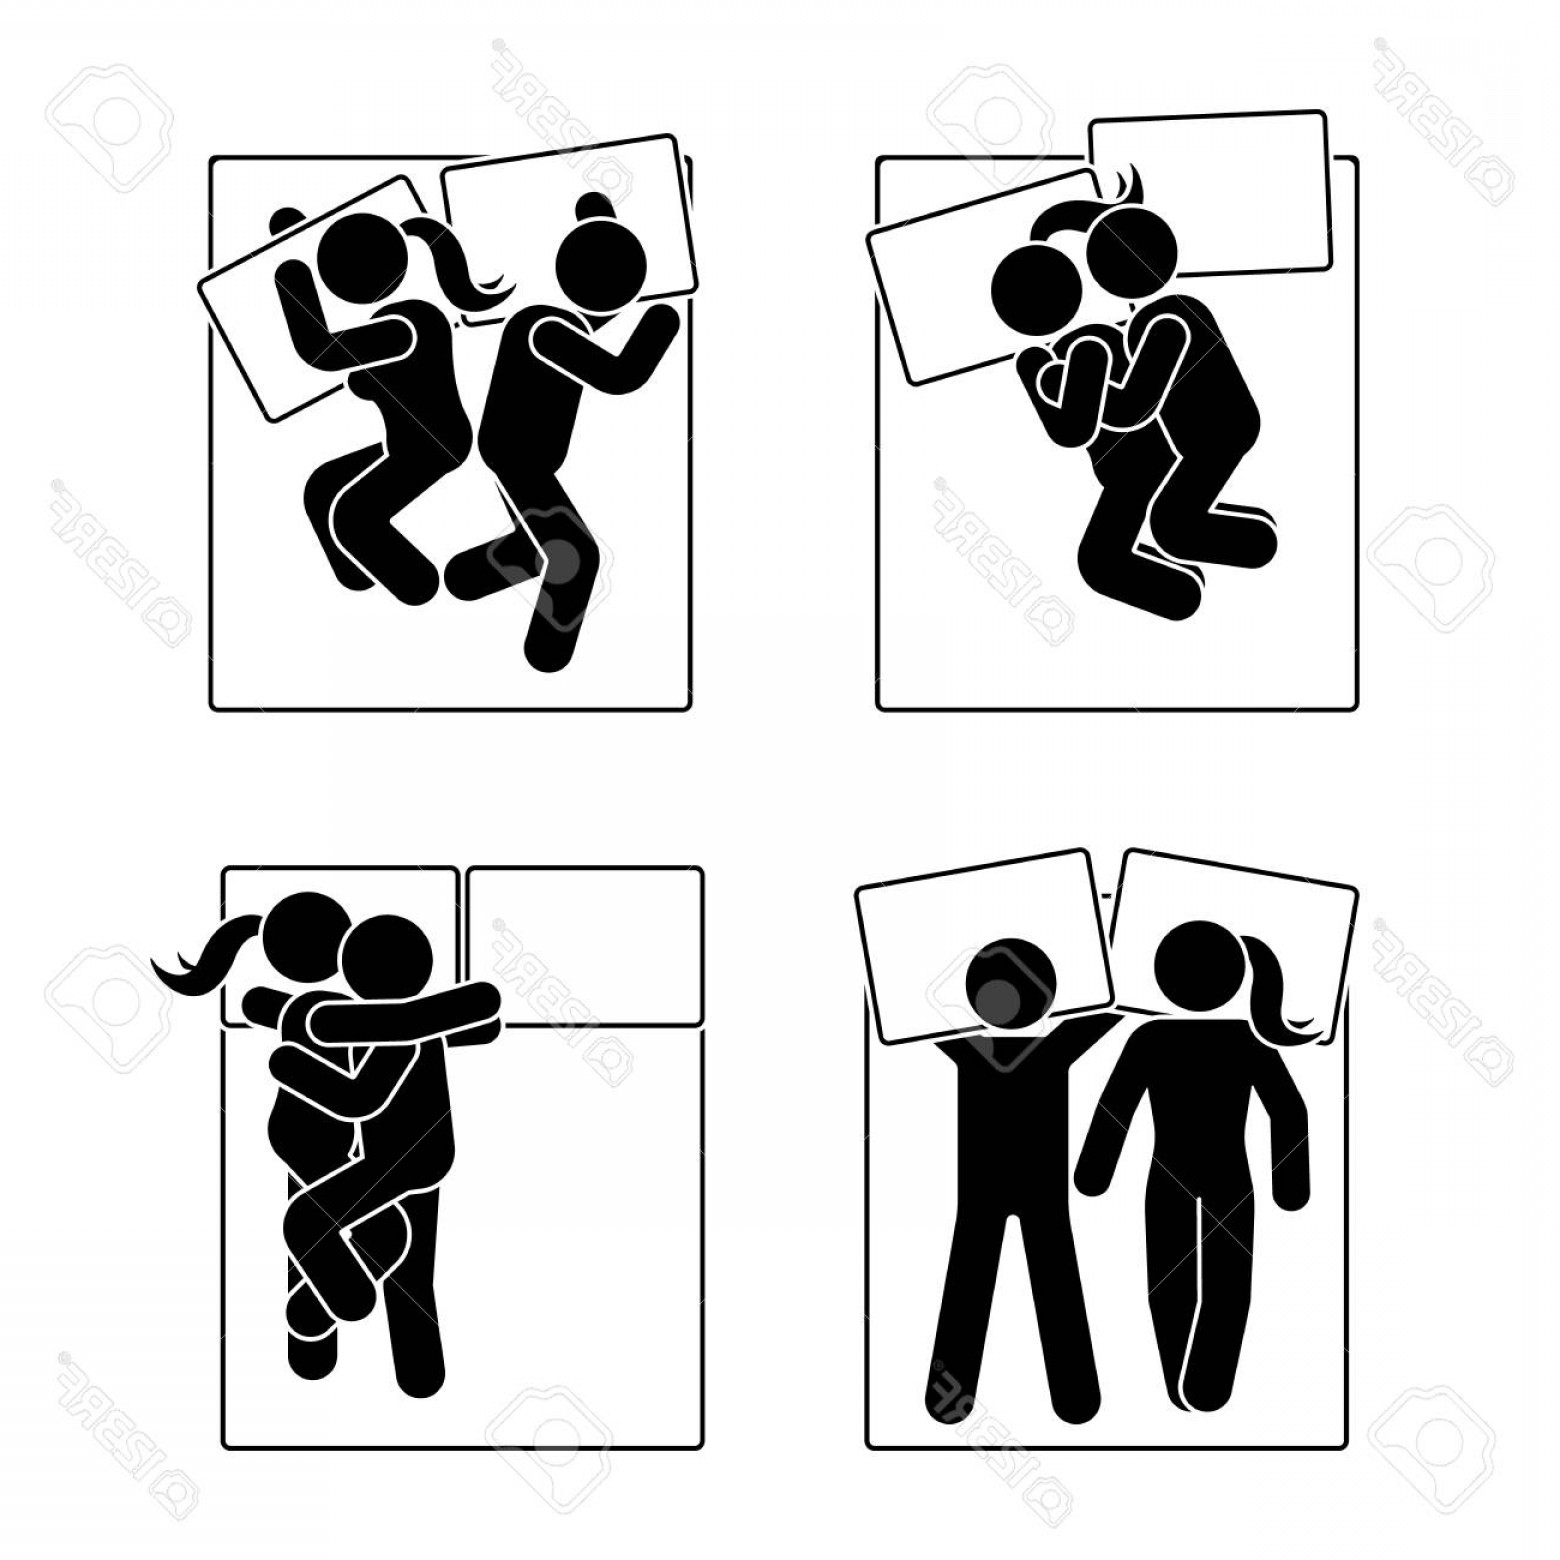 Stick Figure Positions Vector Set: Photostock Vector Stick Figure Different Sleeping Position Set Vector Illustration Of Different Dreaming Couple Poses